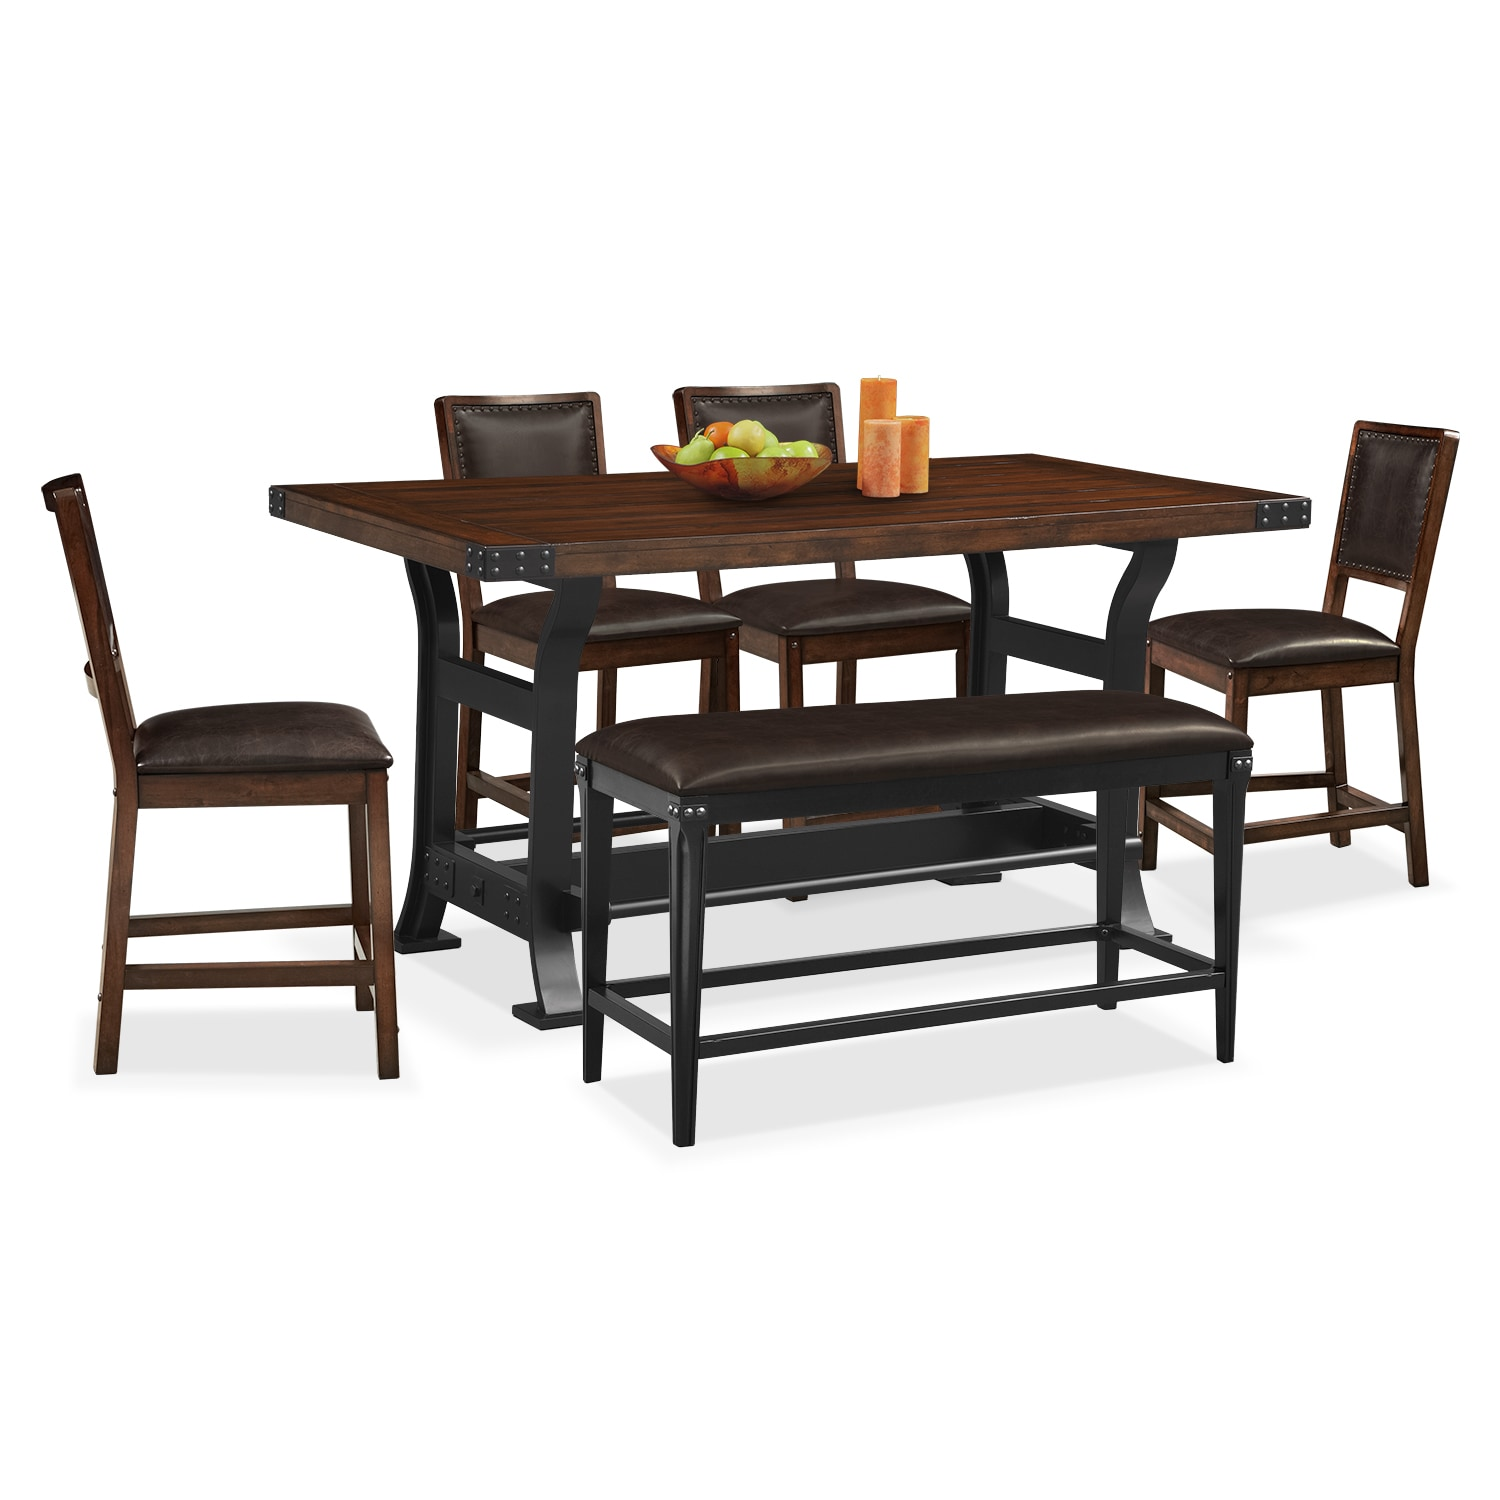 Counter Height Dining Room Chairs Newcastle Counter Height Dining Table 4 Side Chairs And